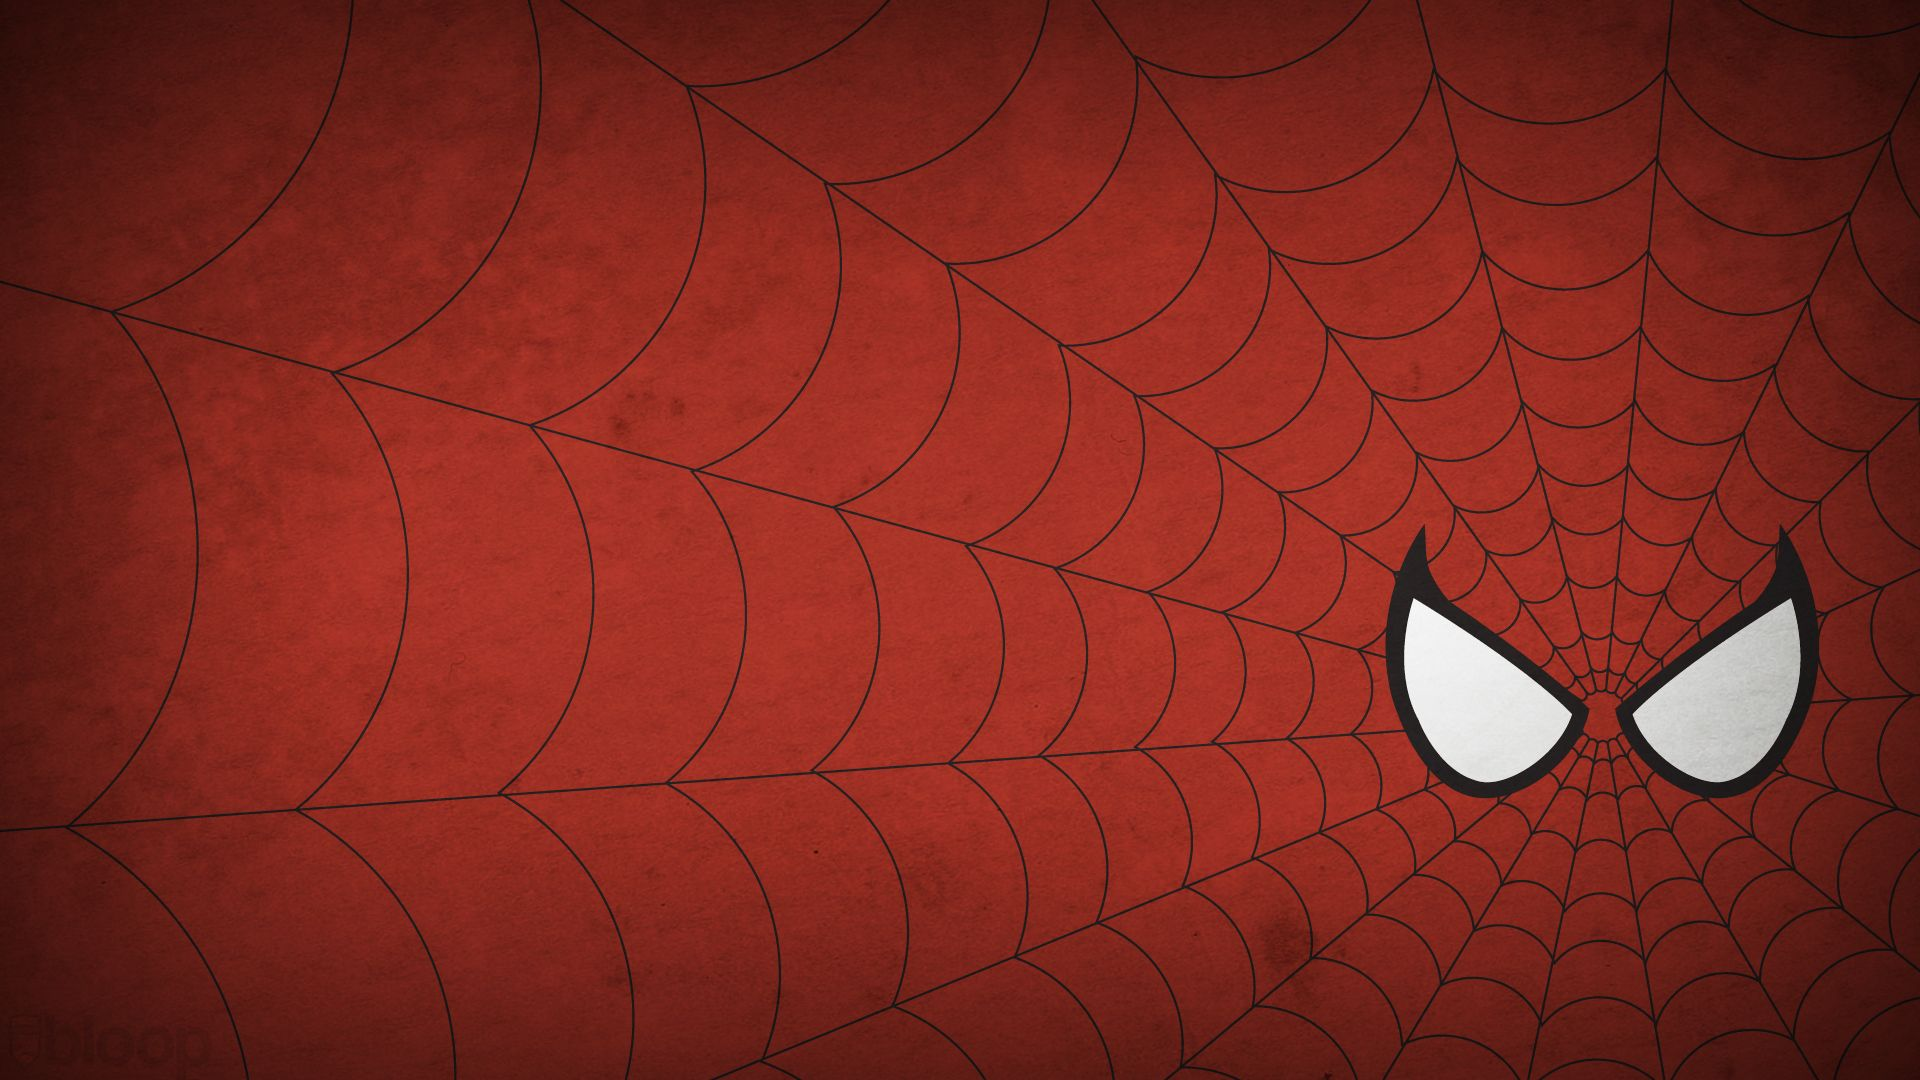 Spiderman Minimal Wallpaper Marvel Wallpaper Dc Comics Wallpaper Marvel Comics Wallpaper